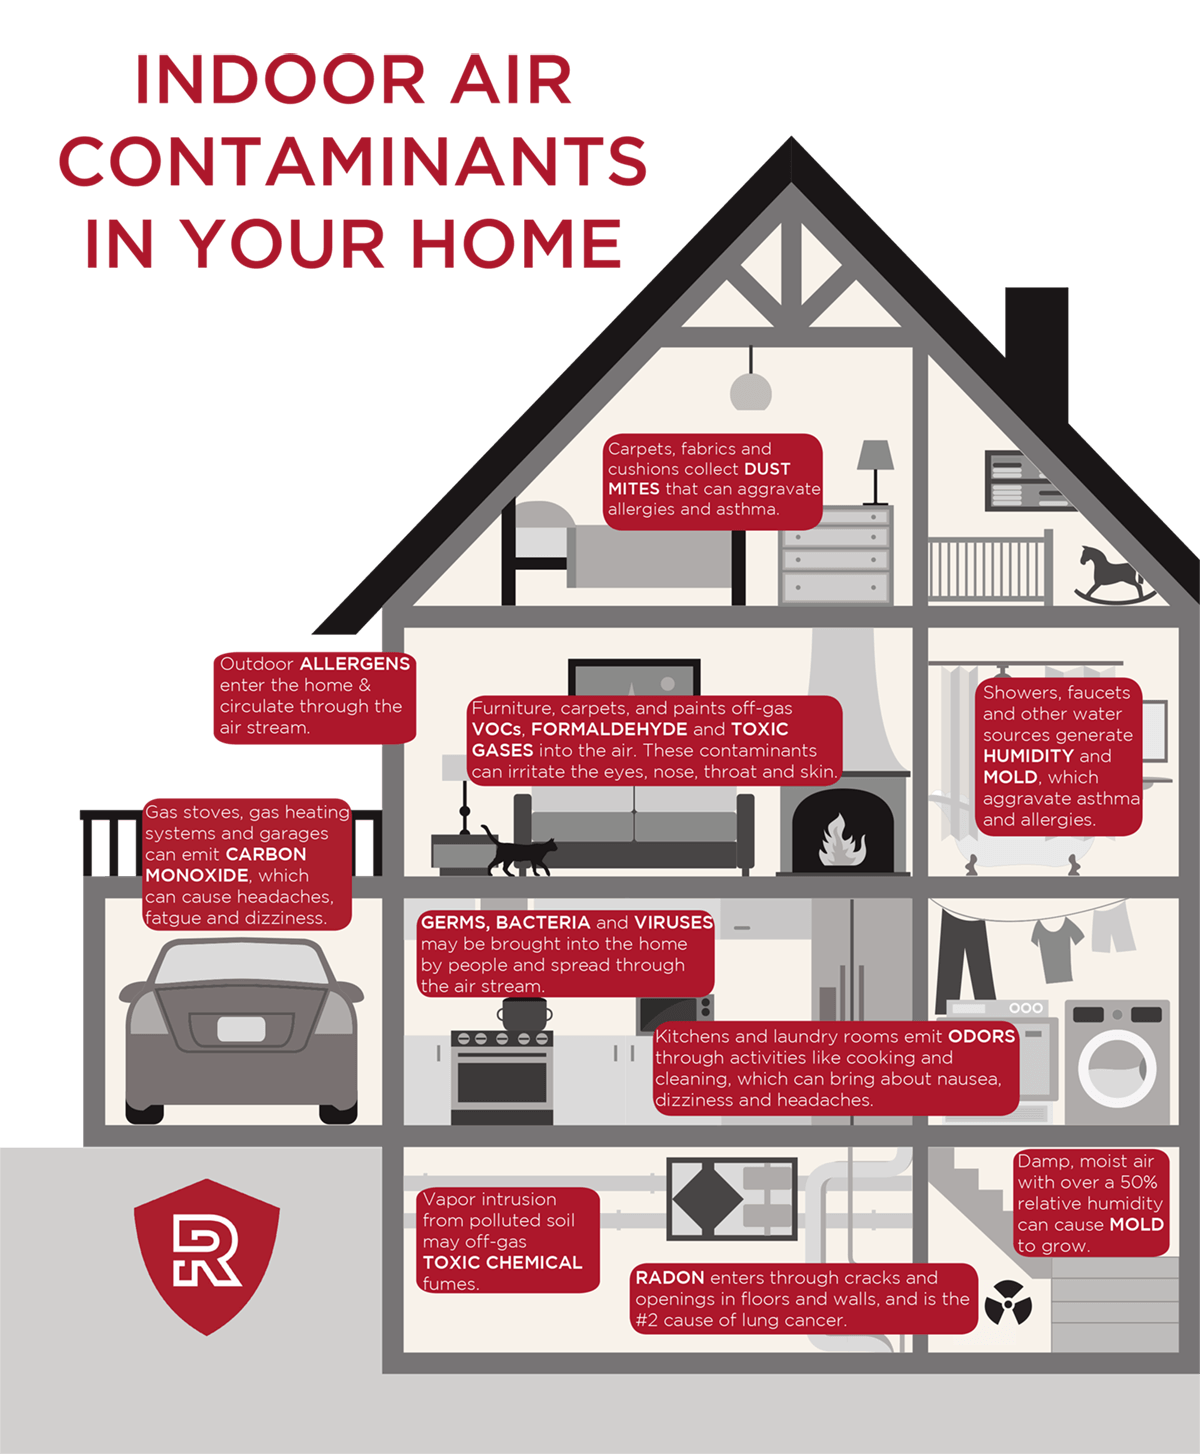 Indoor Air contaminants